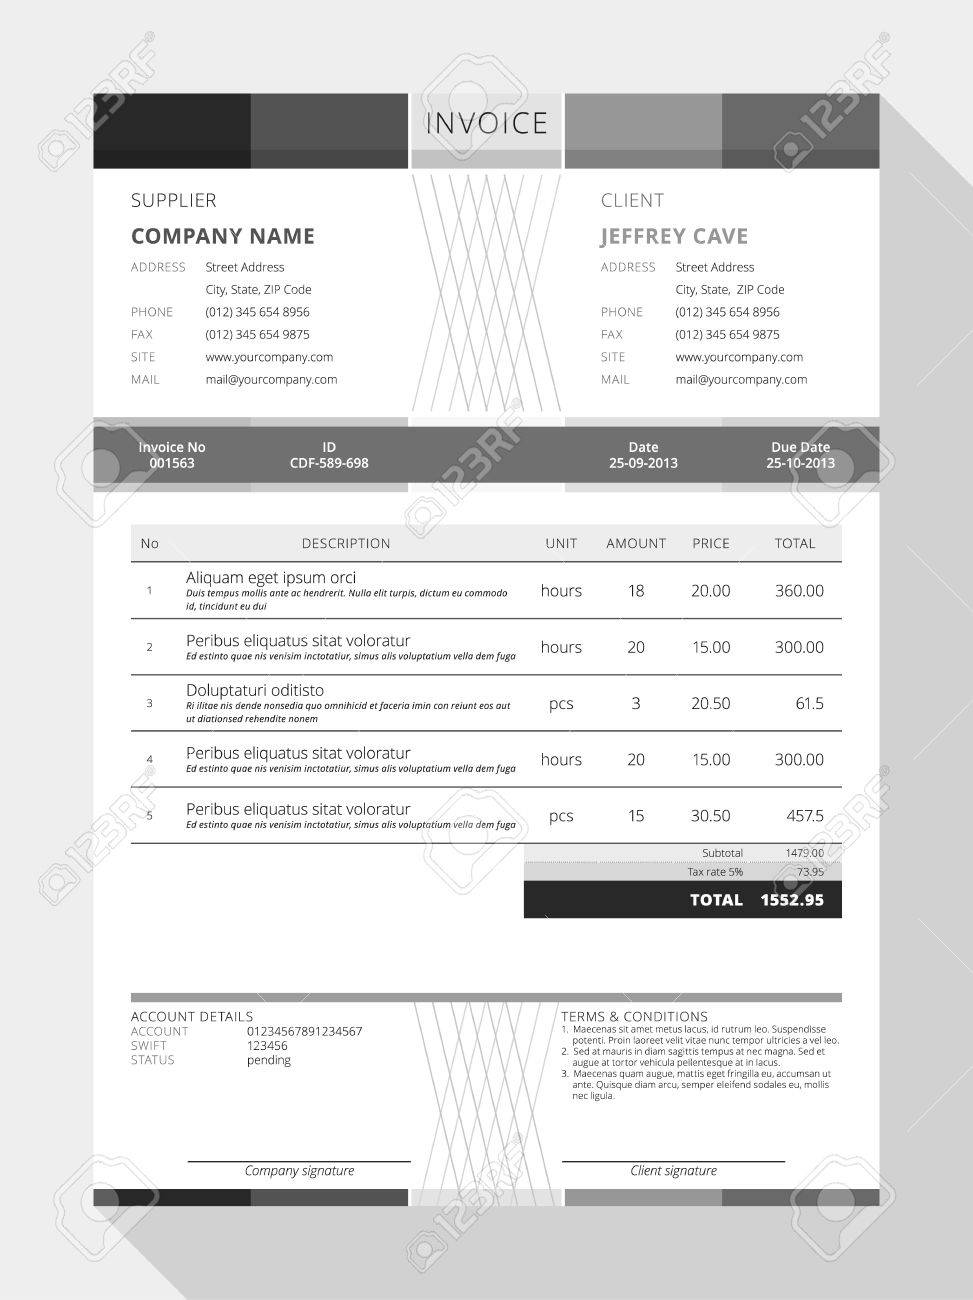 Darkfaderus  Outstanding Design An Invoice  Professional Graphic Design Invoice  With Fascinating Vector Customizable Invoice Form Template Design Vector   Design An Invoice With Cute Saas Invoicing Also Exel Invoice Template In Addition Invoice Prices Cars And Dealer Invoice On New Cars As Well As Hotel Invoice Format Additionally How To Prepare A Invoice From Happytomco With Darkfaderus  Fascinating Design An Invoice  Professional Graphic Design Invoice  With Cute Vector Customizable Invoice Form Template Design Vector   Design An Invoice And Outstanding Saas Invoicing Also Exel Invoice Template In Addition Invoice Prices Cars From Happytomco